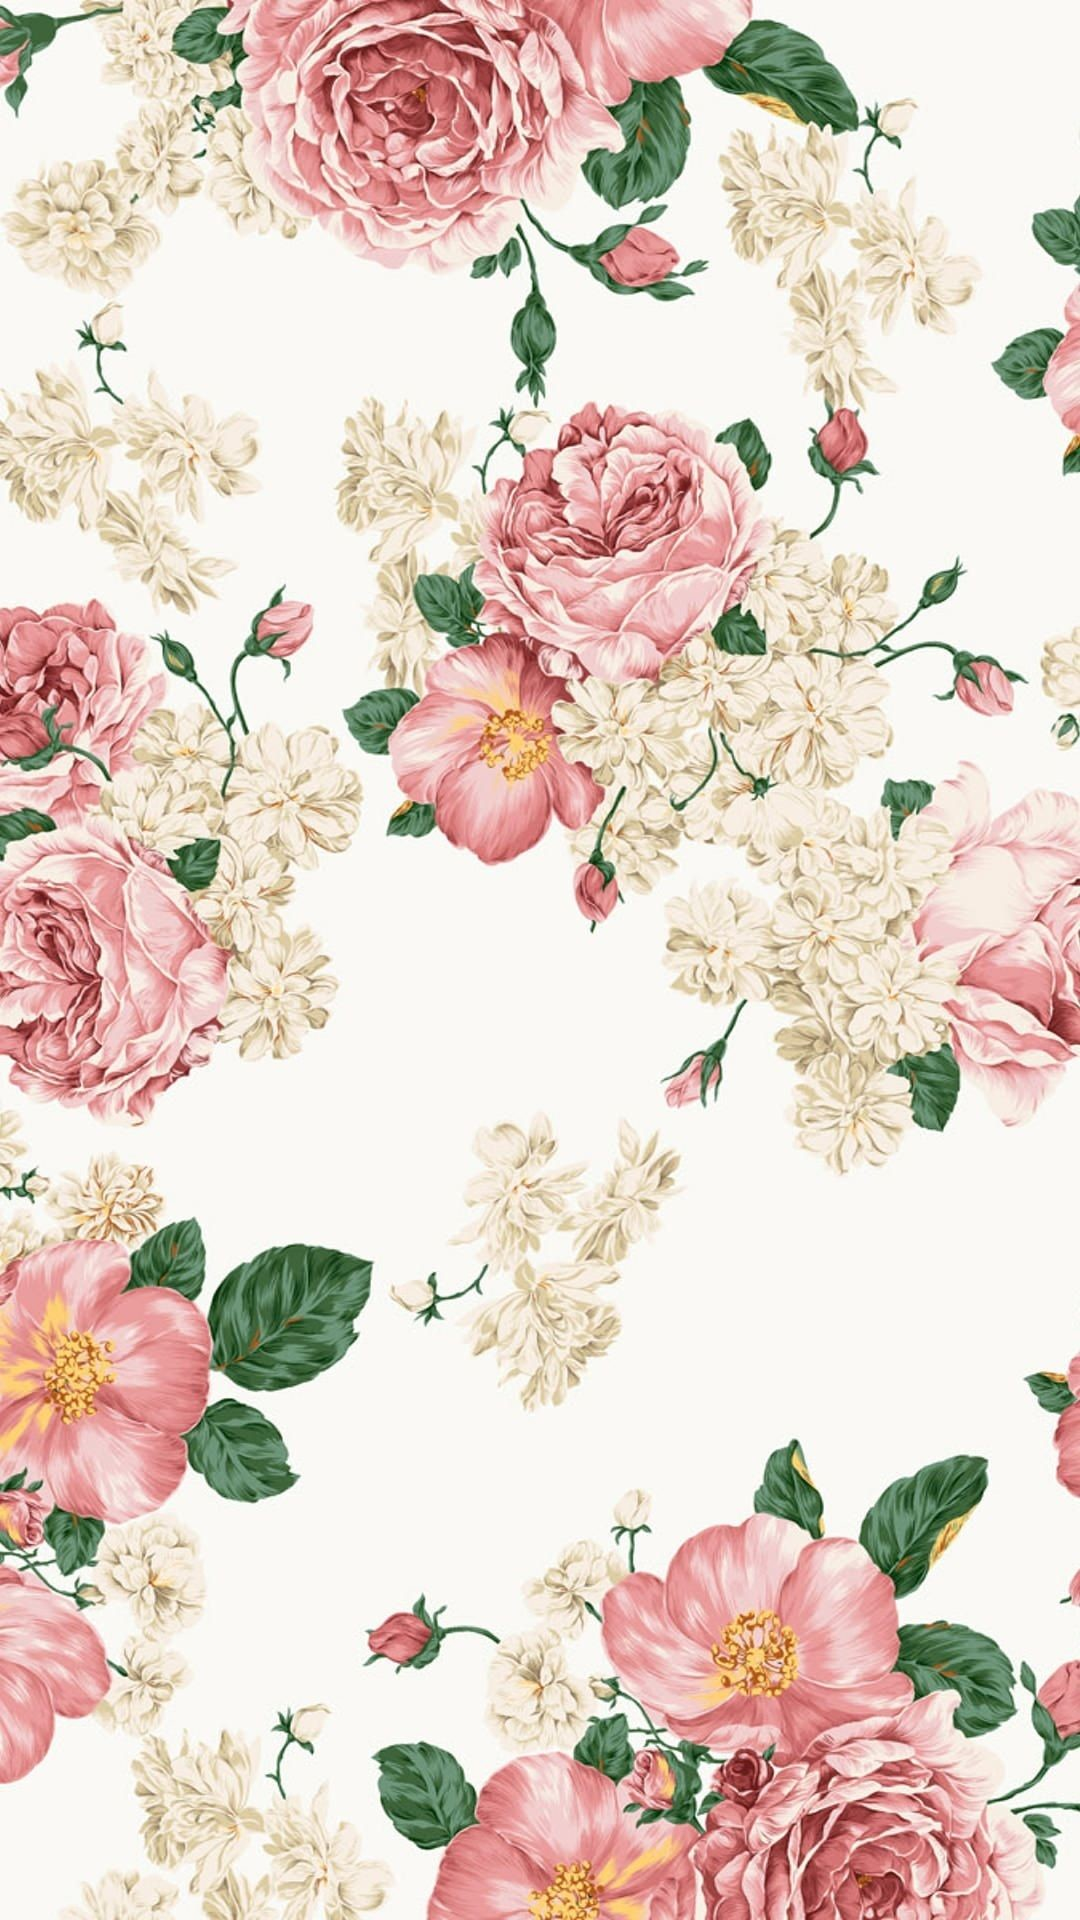 Res: 1080x1920, Painting of roses wallpaper. Roses, flowers, vintage, painting, watercolor, ornament, iPhone, Android, Backgrounds, HD, Sazum 2017.